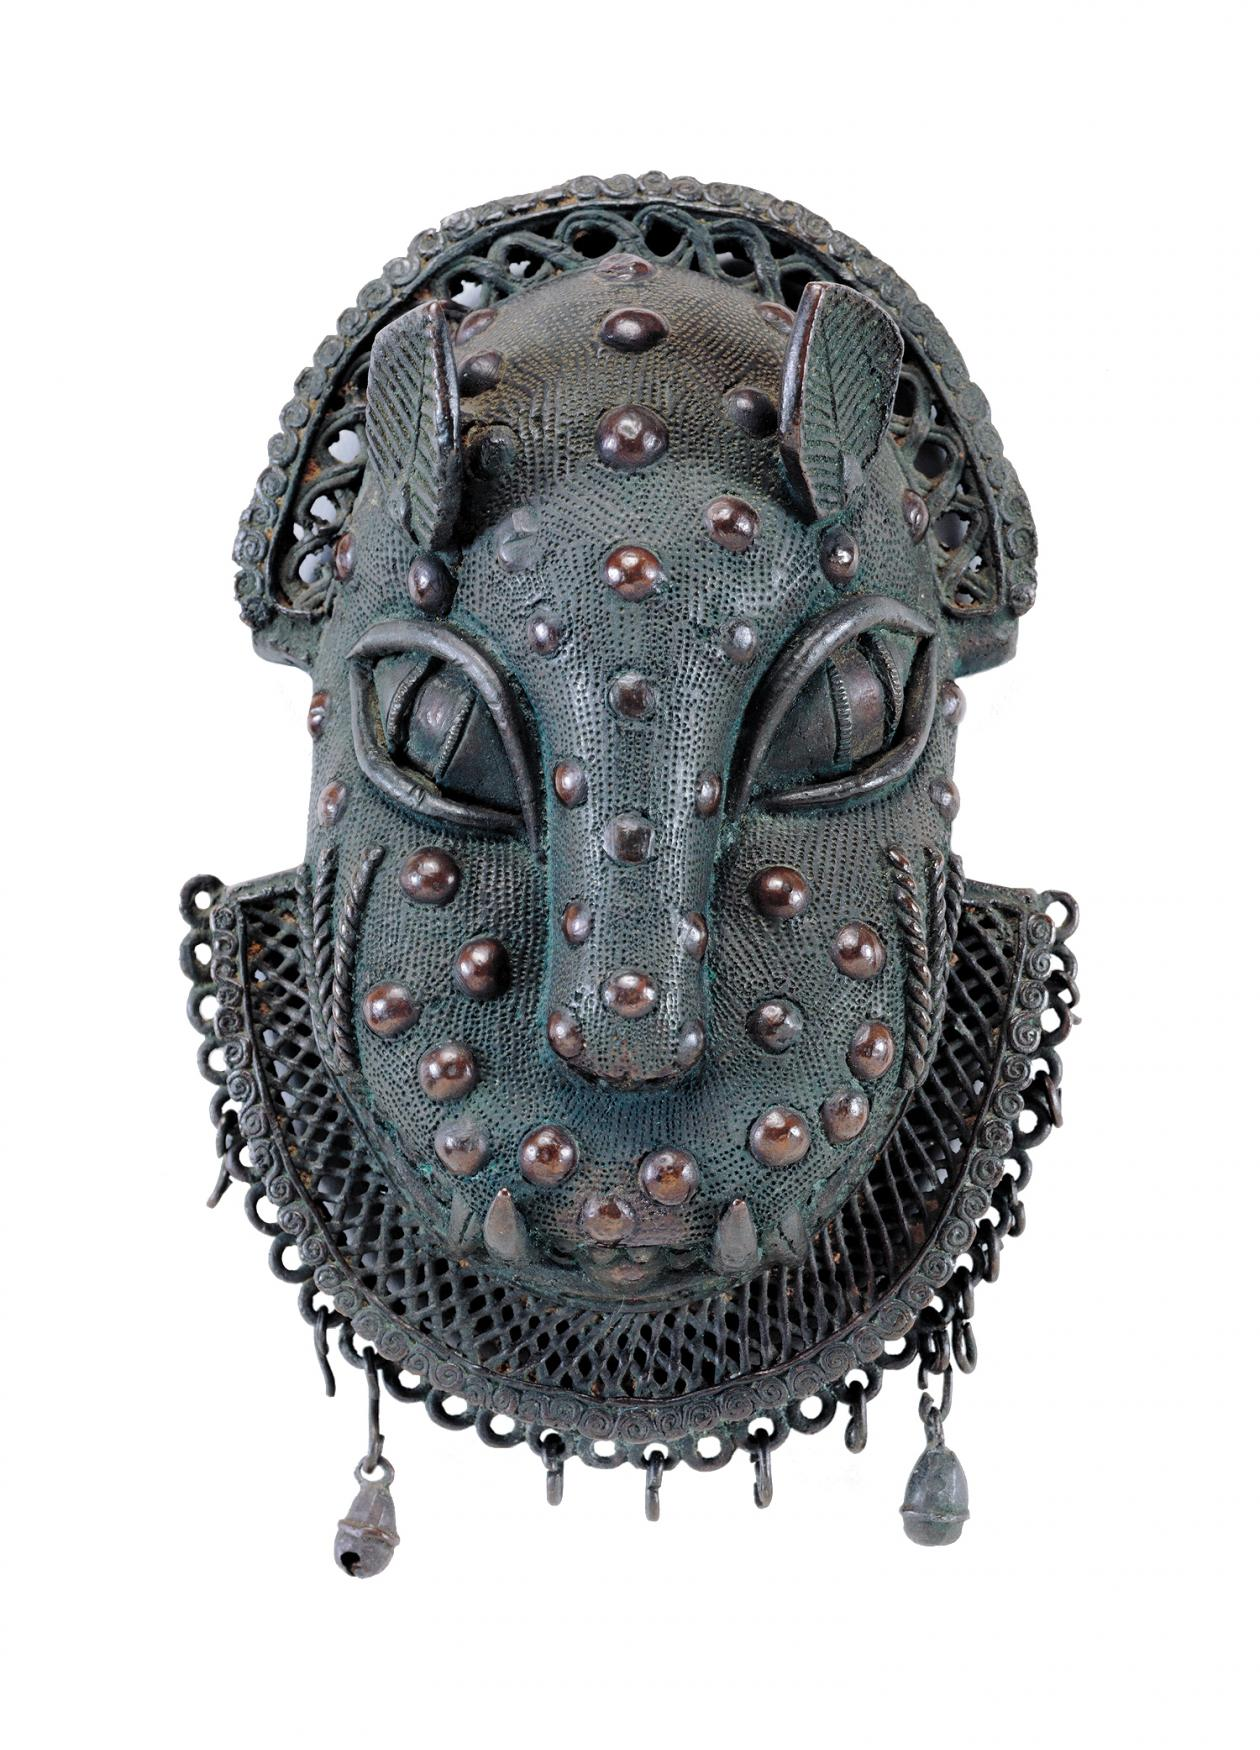 Blue green brass ornament in the shape of a leopard head, with brass studs decorating the face